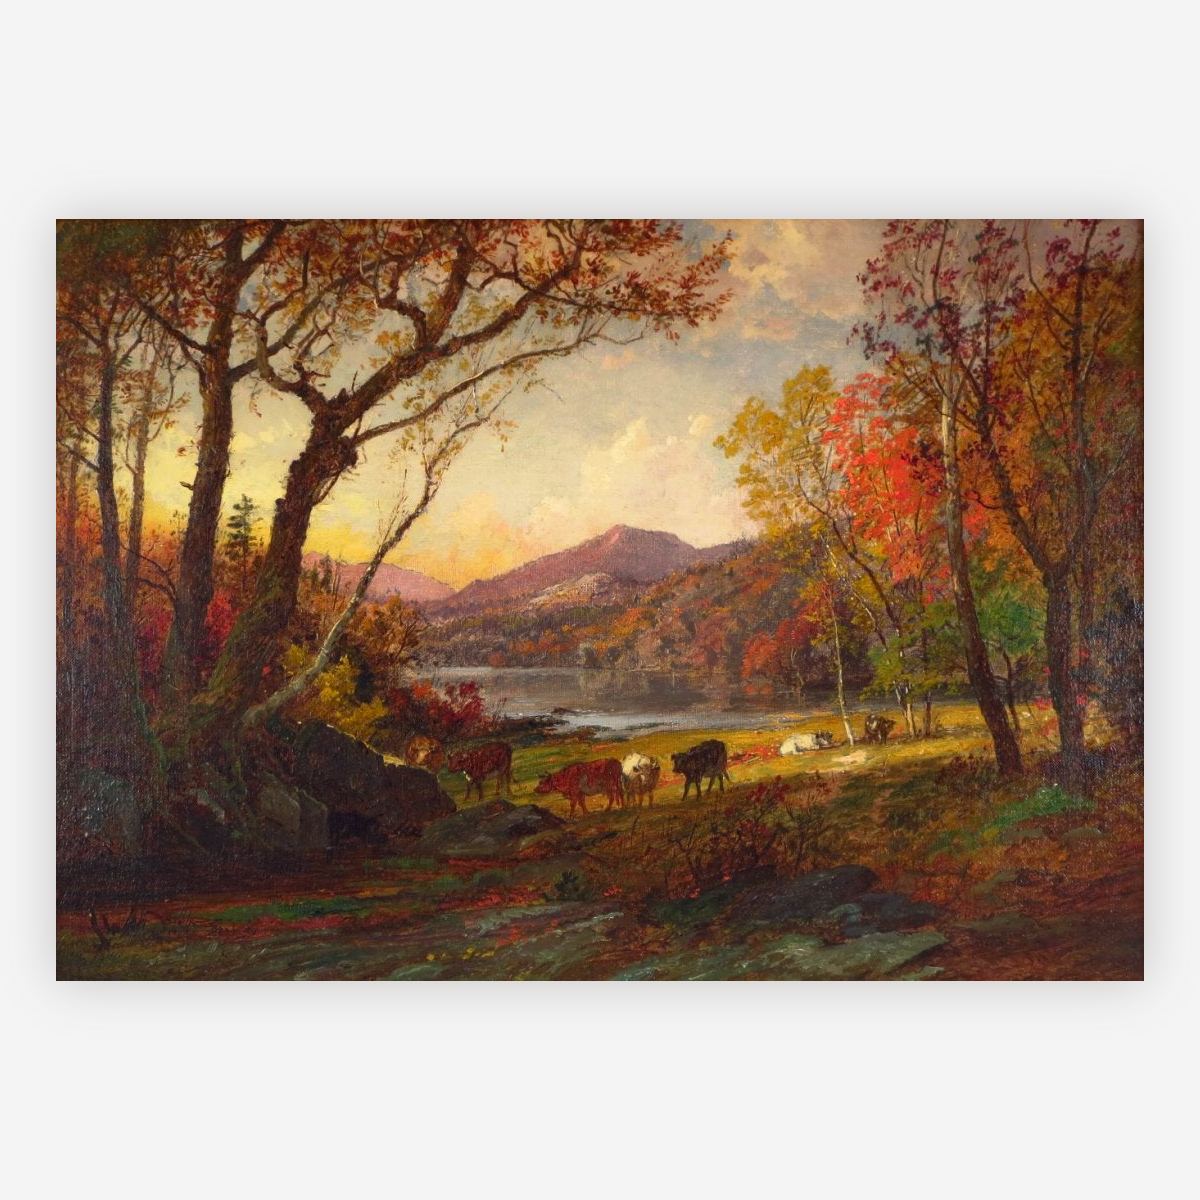 Autumn Landscape with Lake, Mountains and Cattle